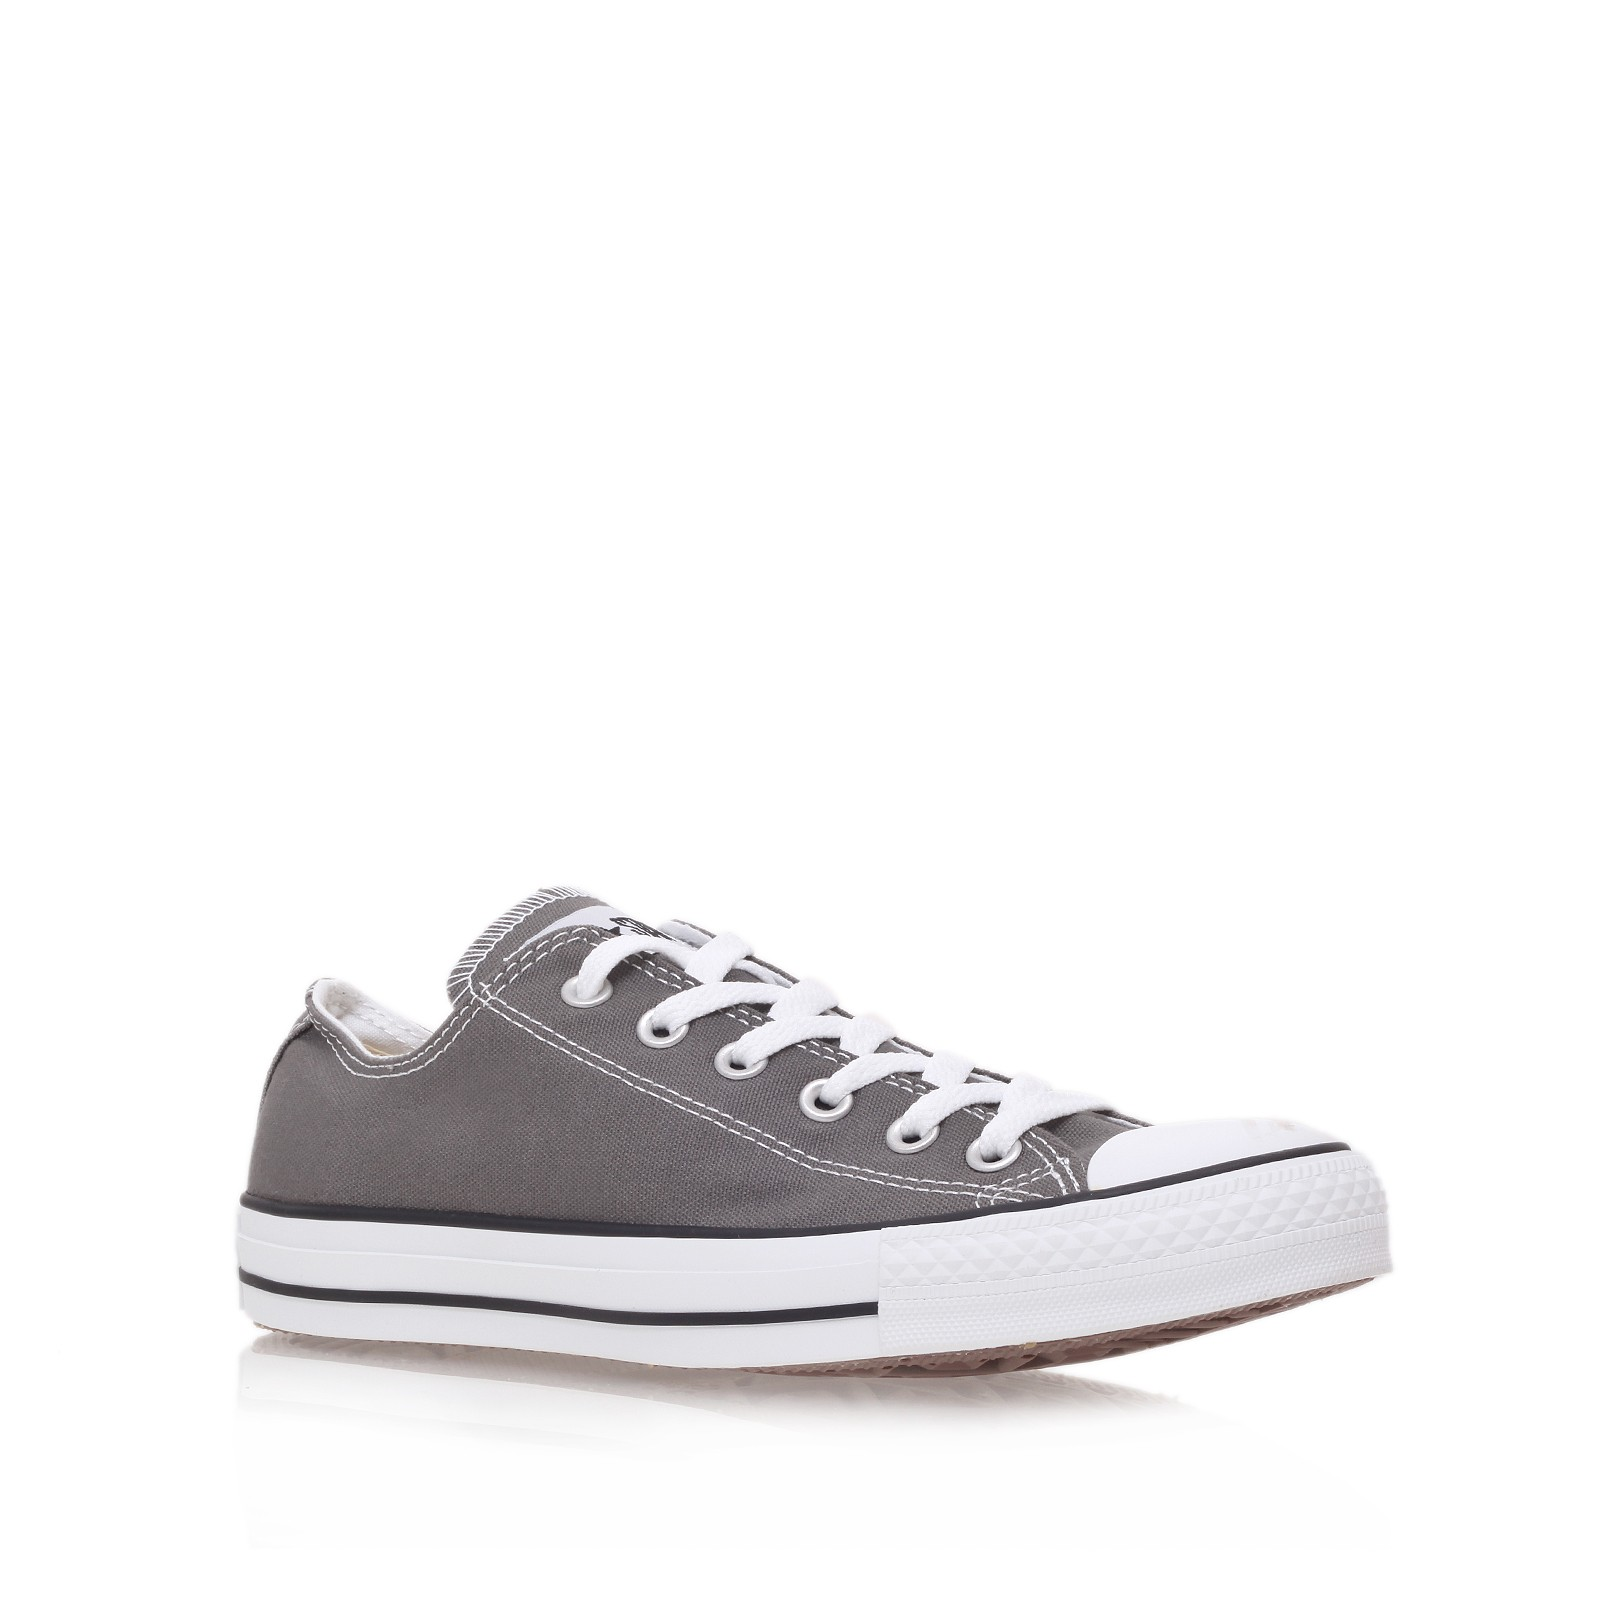 converse all star low in gray for men grey lyst. Black Bedroom Furniture Sets. Home Design Ideas